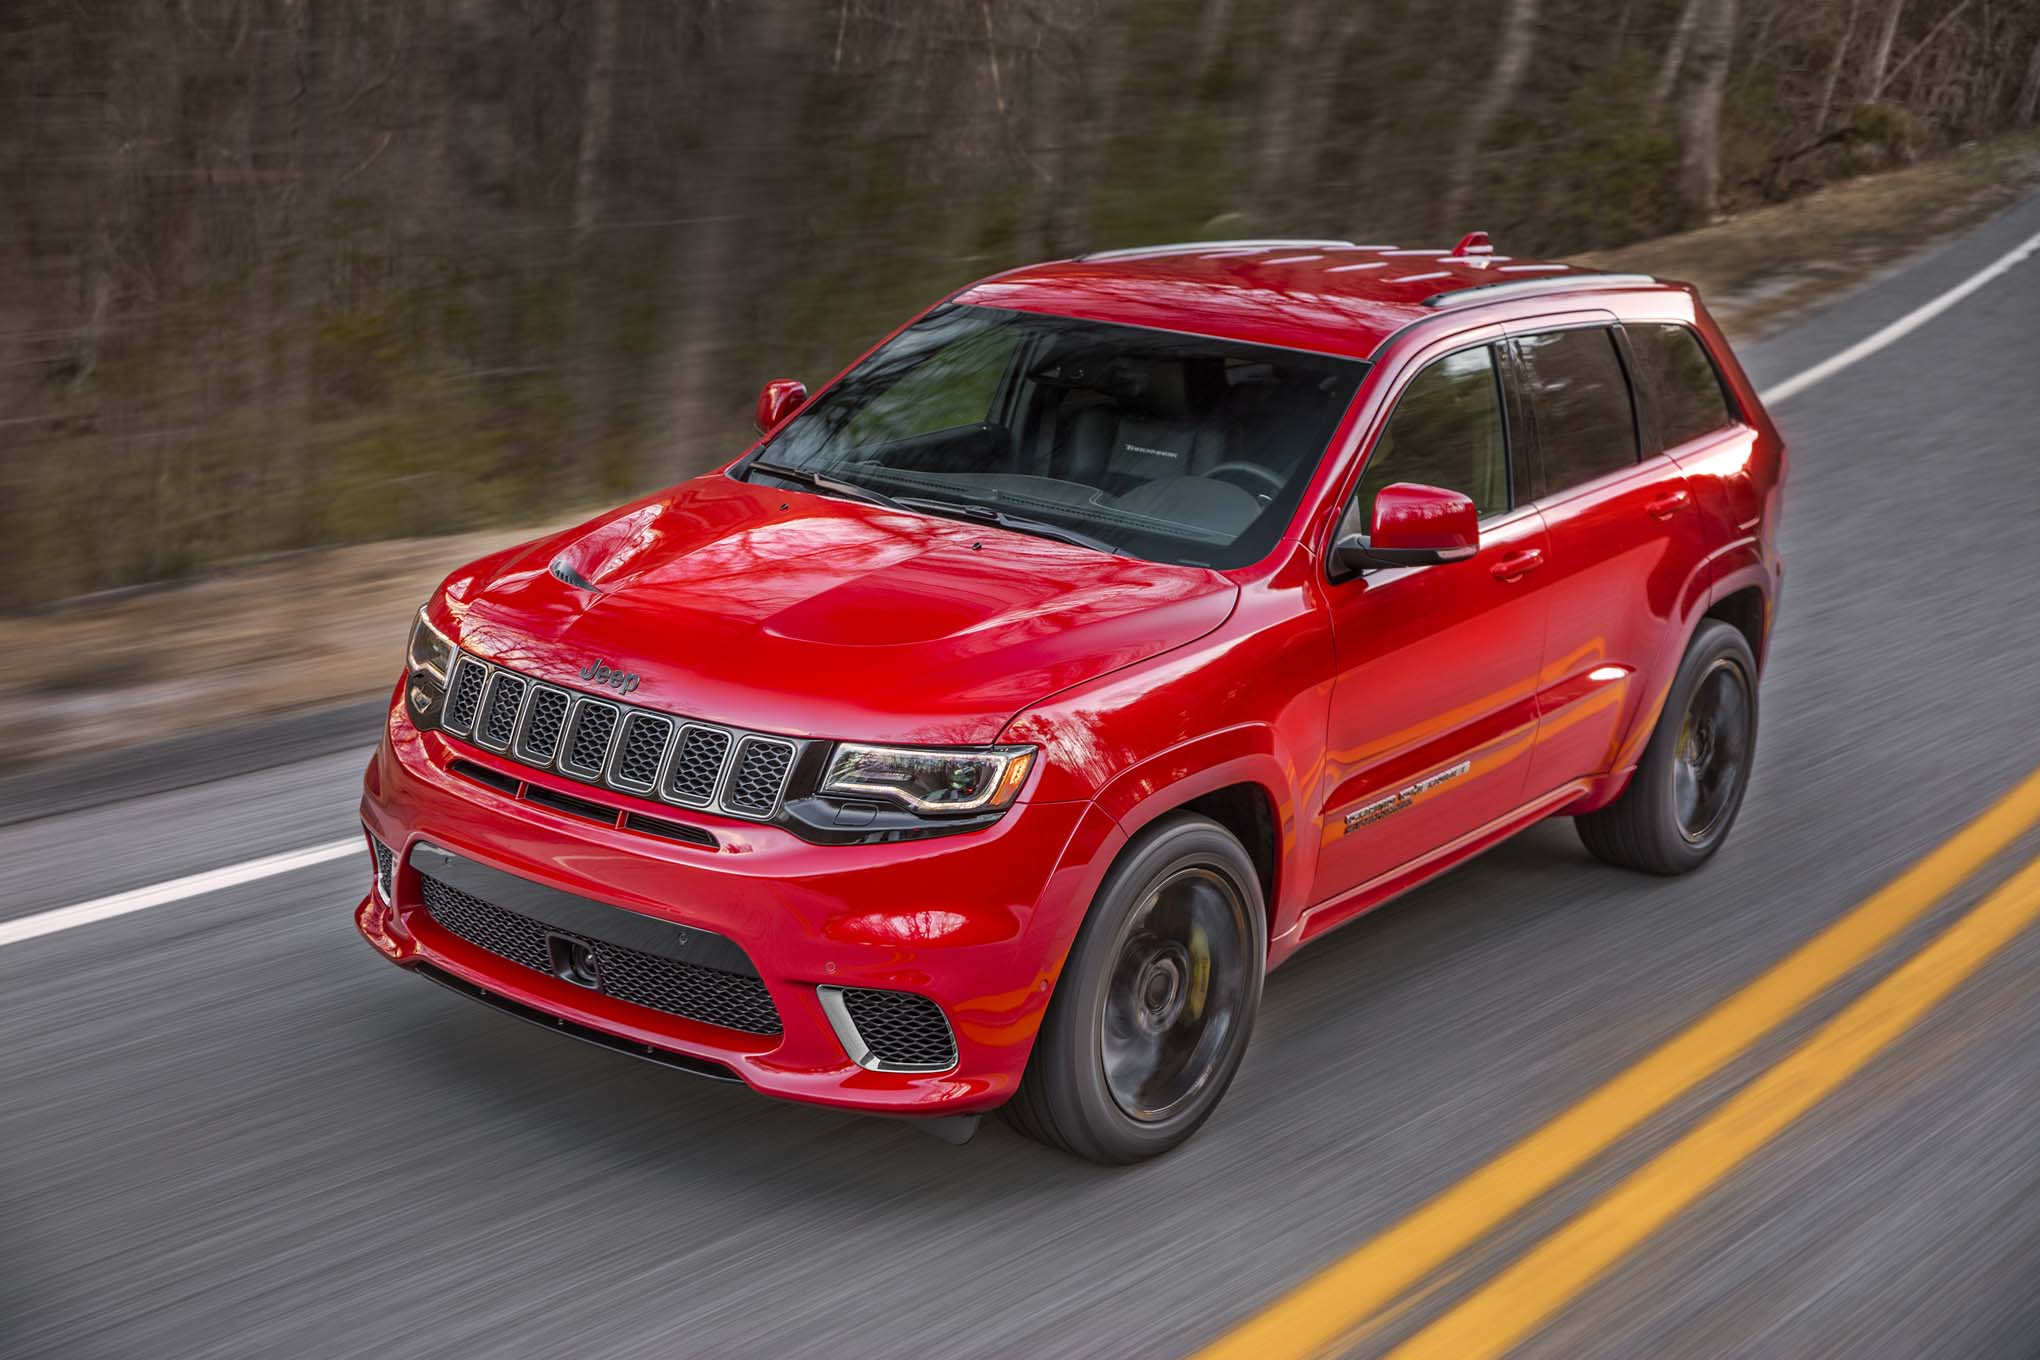 The 2018 Jeep Grand Cherokee Trackhawk is an SUV That Runs 11-Second Quarter Miles